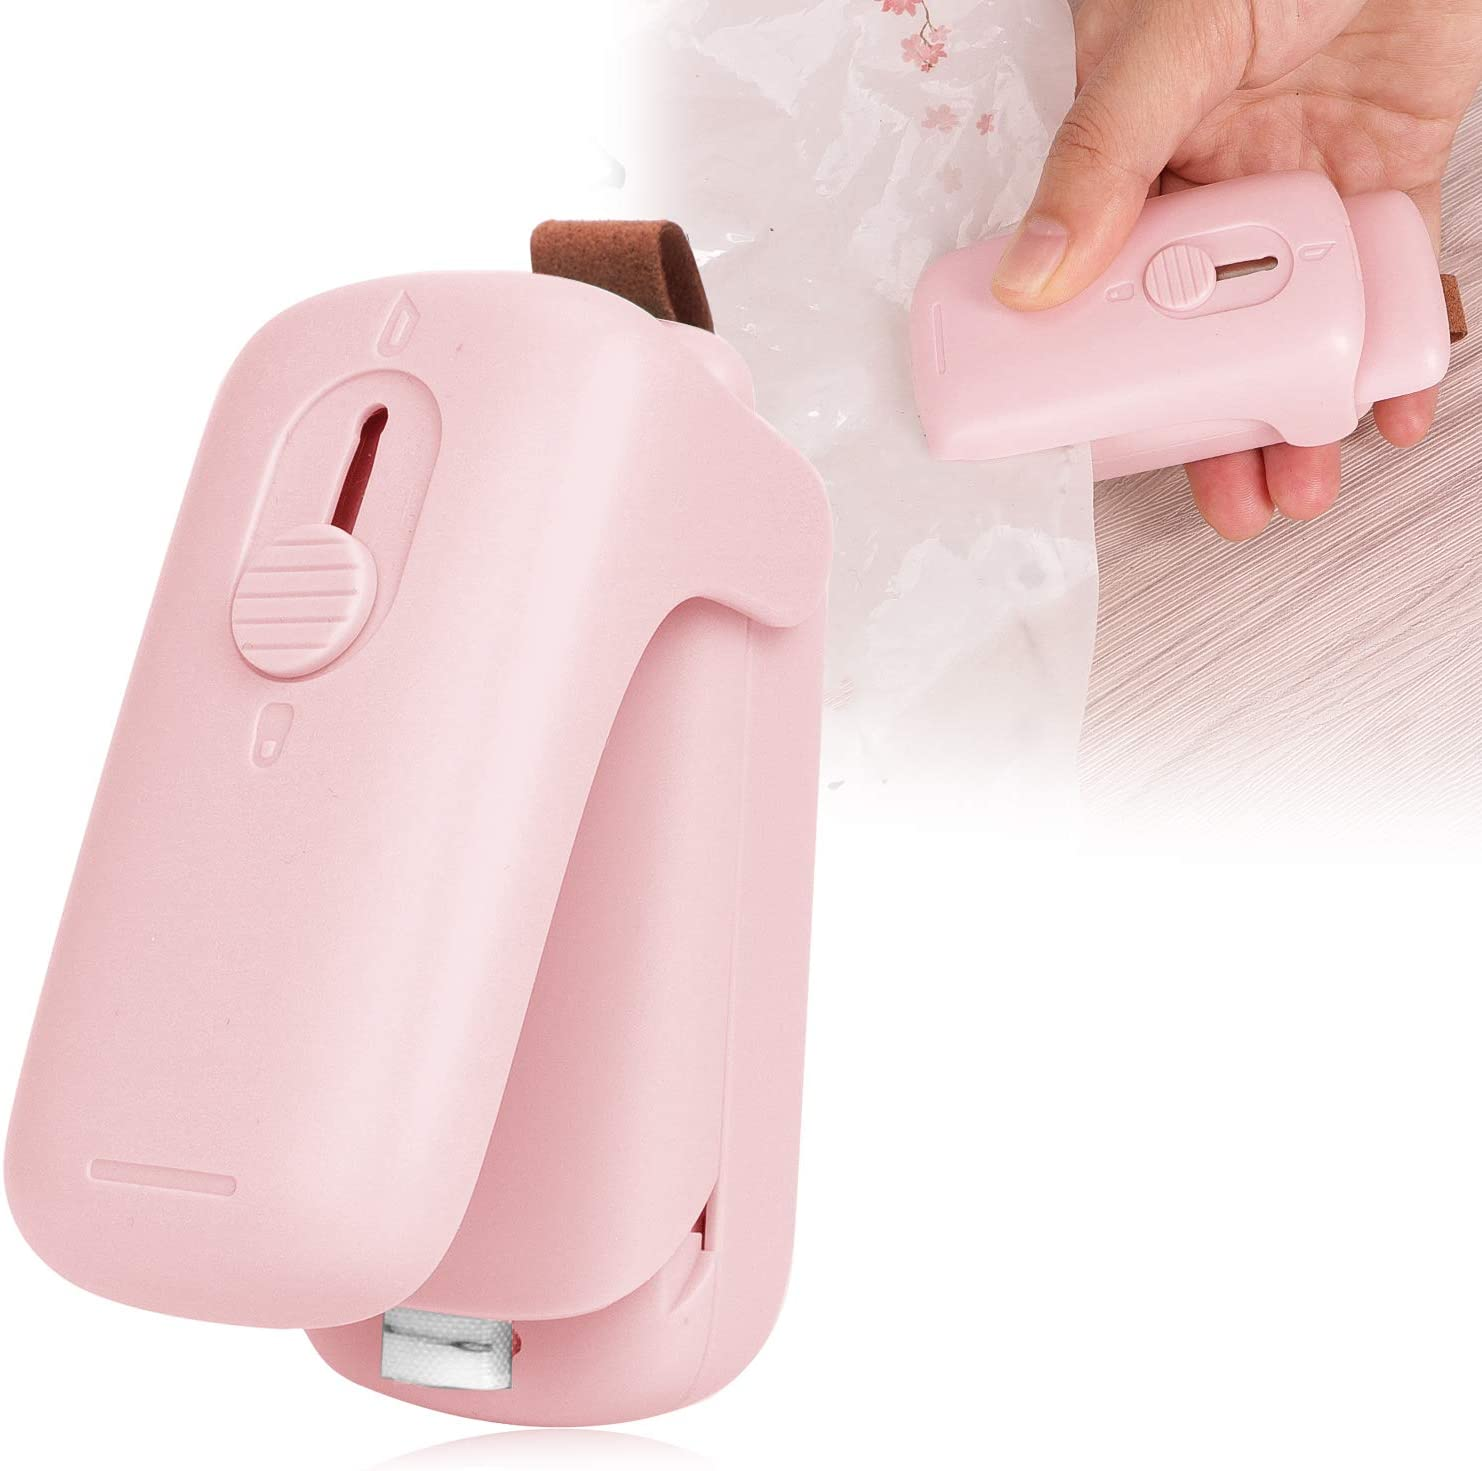 Portable Mini Heat Sealer and cutter 2 in 1 Handheld,Food Bag Resealer,Sealing Machine for Plastic Bags Food Storage Snack Fresh or Chip Saver (Pink)